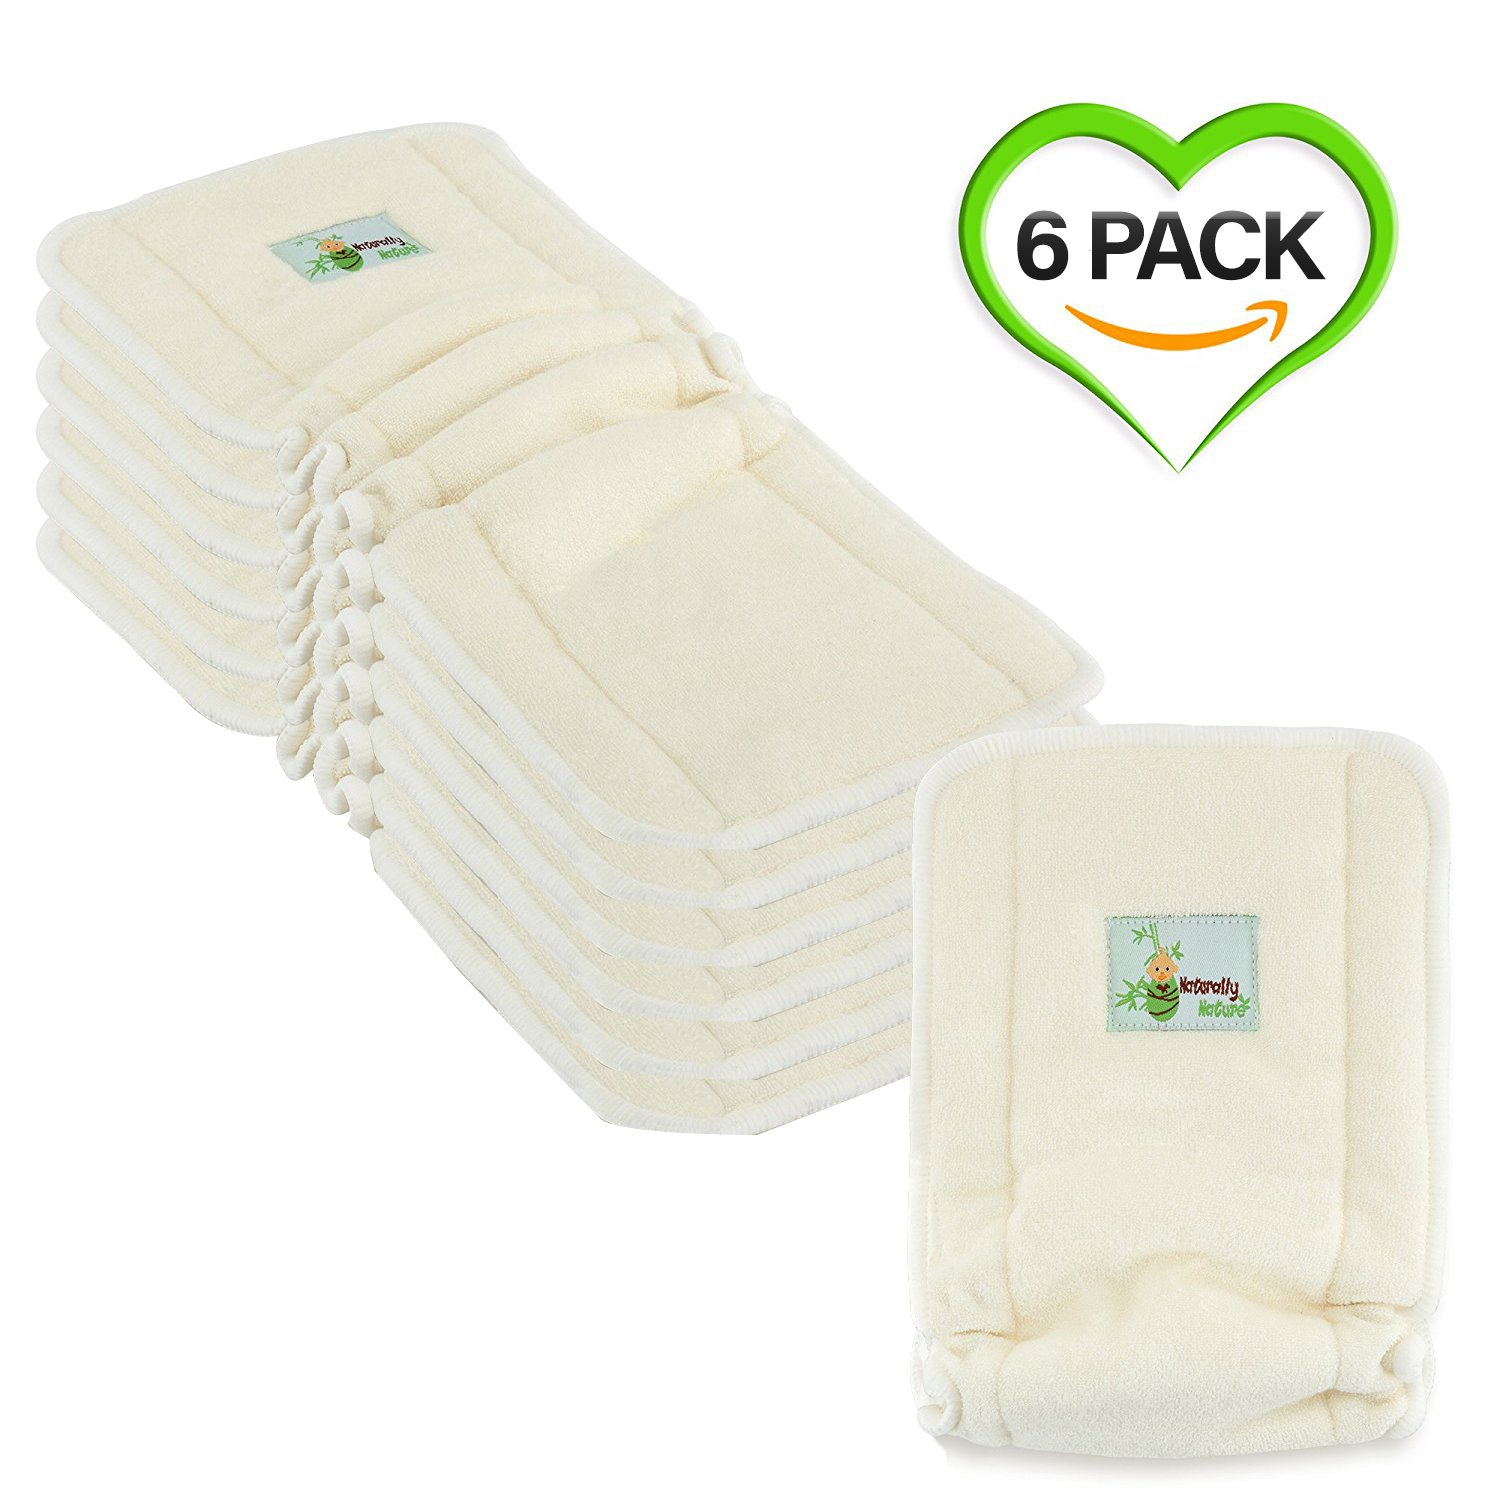 Naturally Natures 4 Layer Cloth Diaper - Inserts - with Gussetts Bamboo Reusable Liners for Cloth Diapers (Pack of 6)